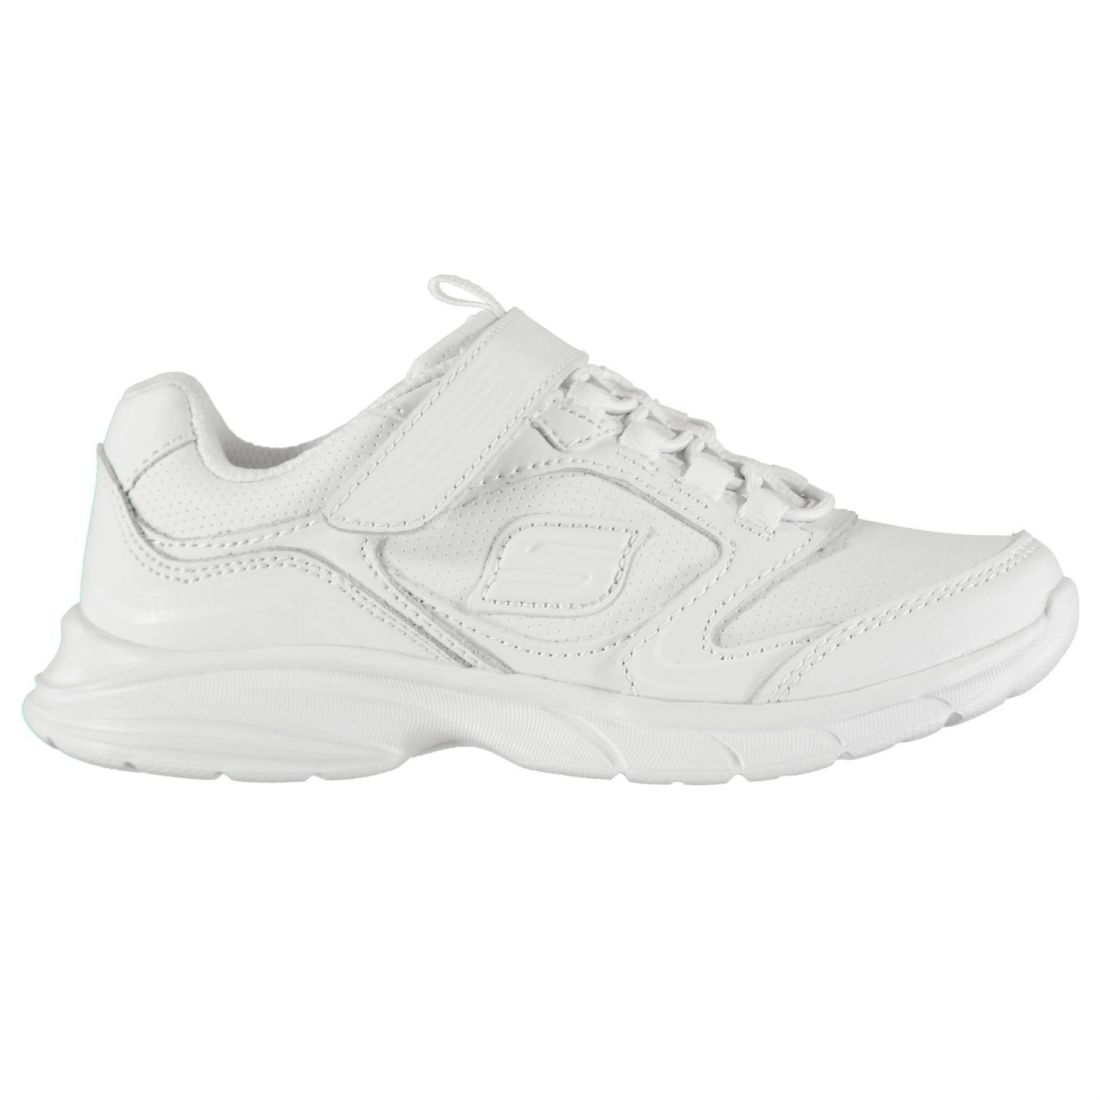 Hot Skechers Shoes For Kids Skechers Vim Strap Trainers